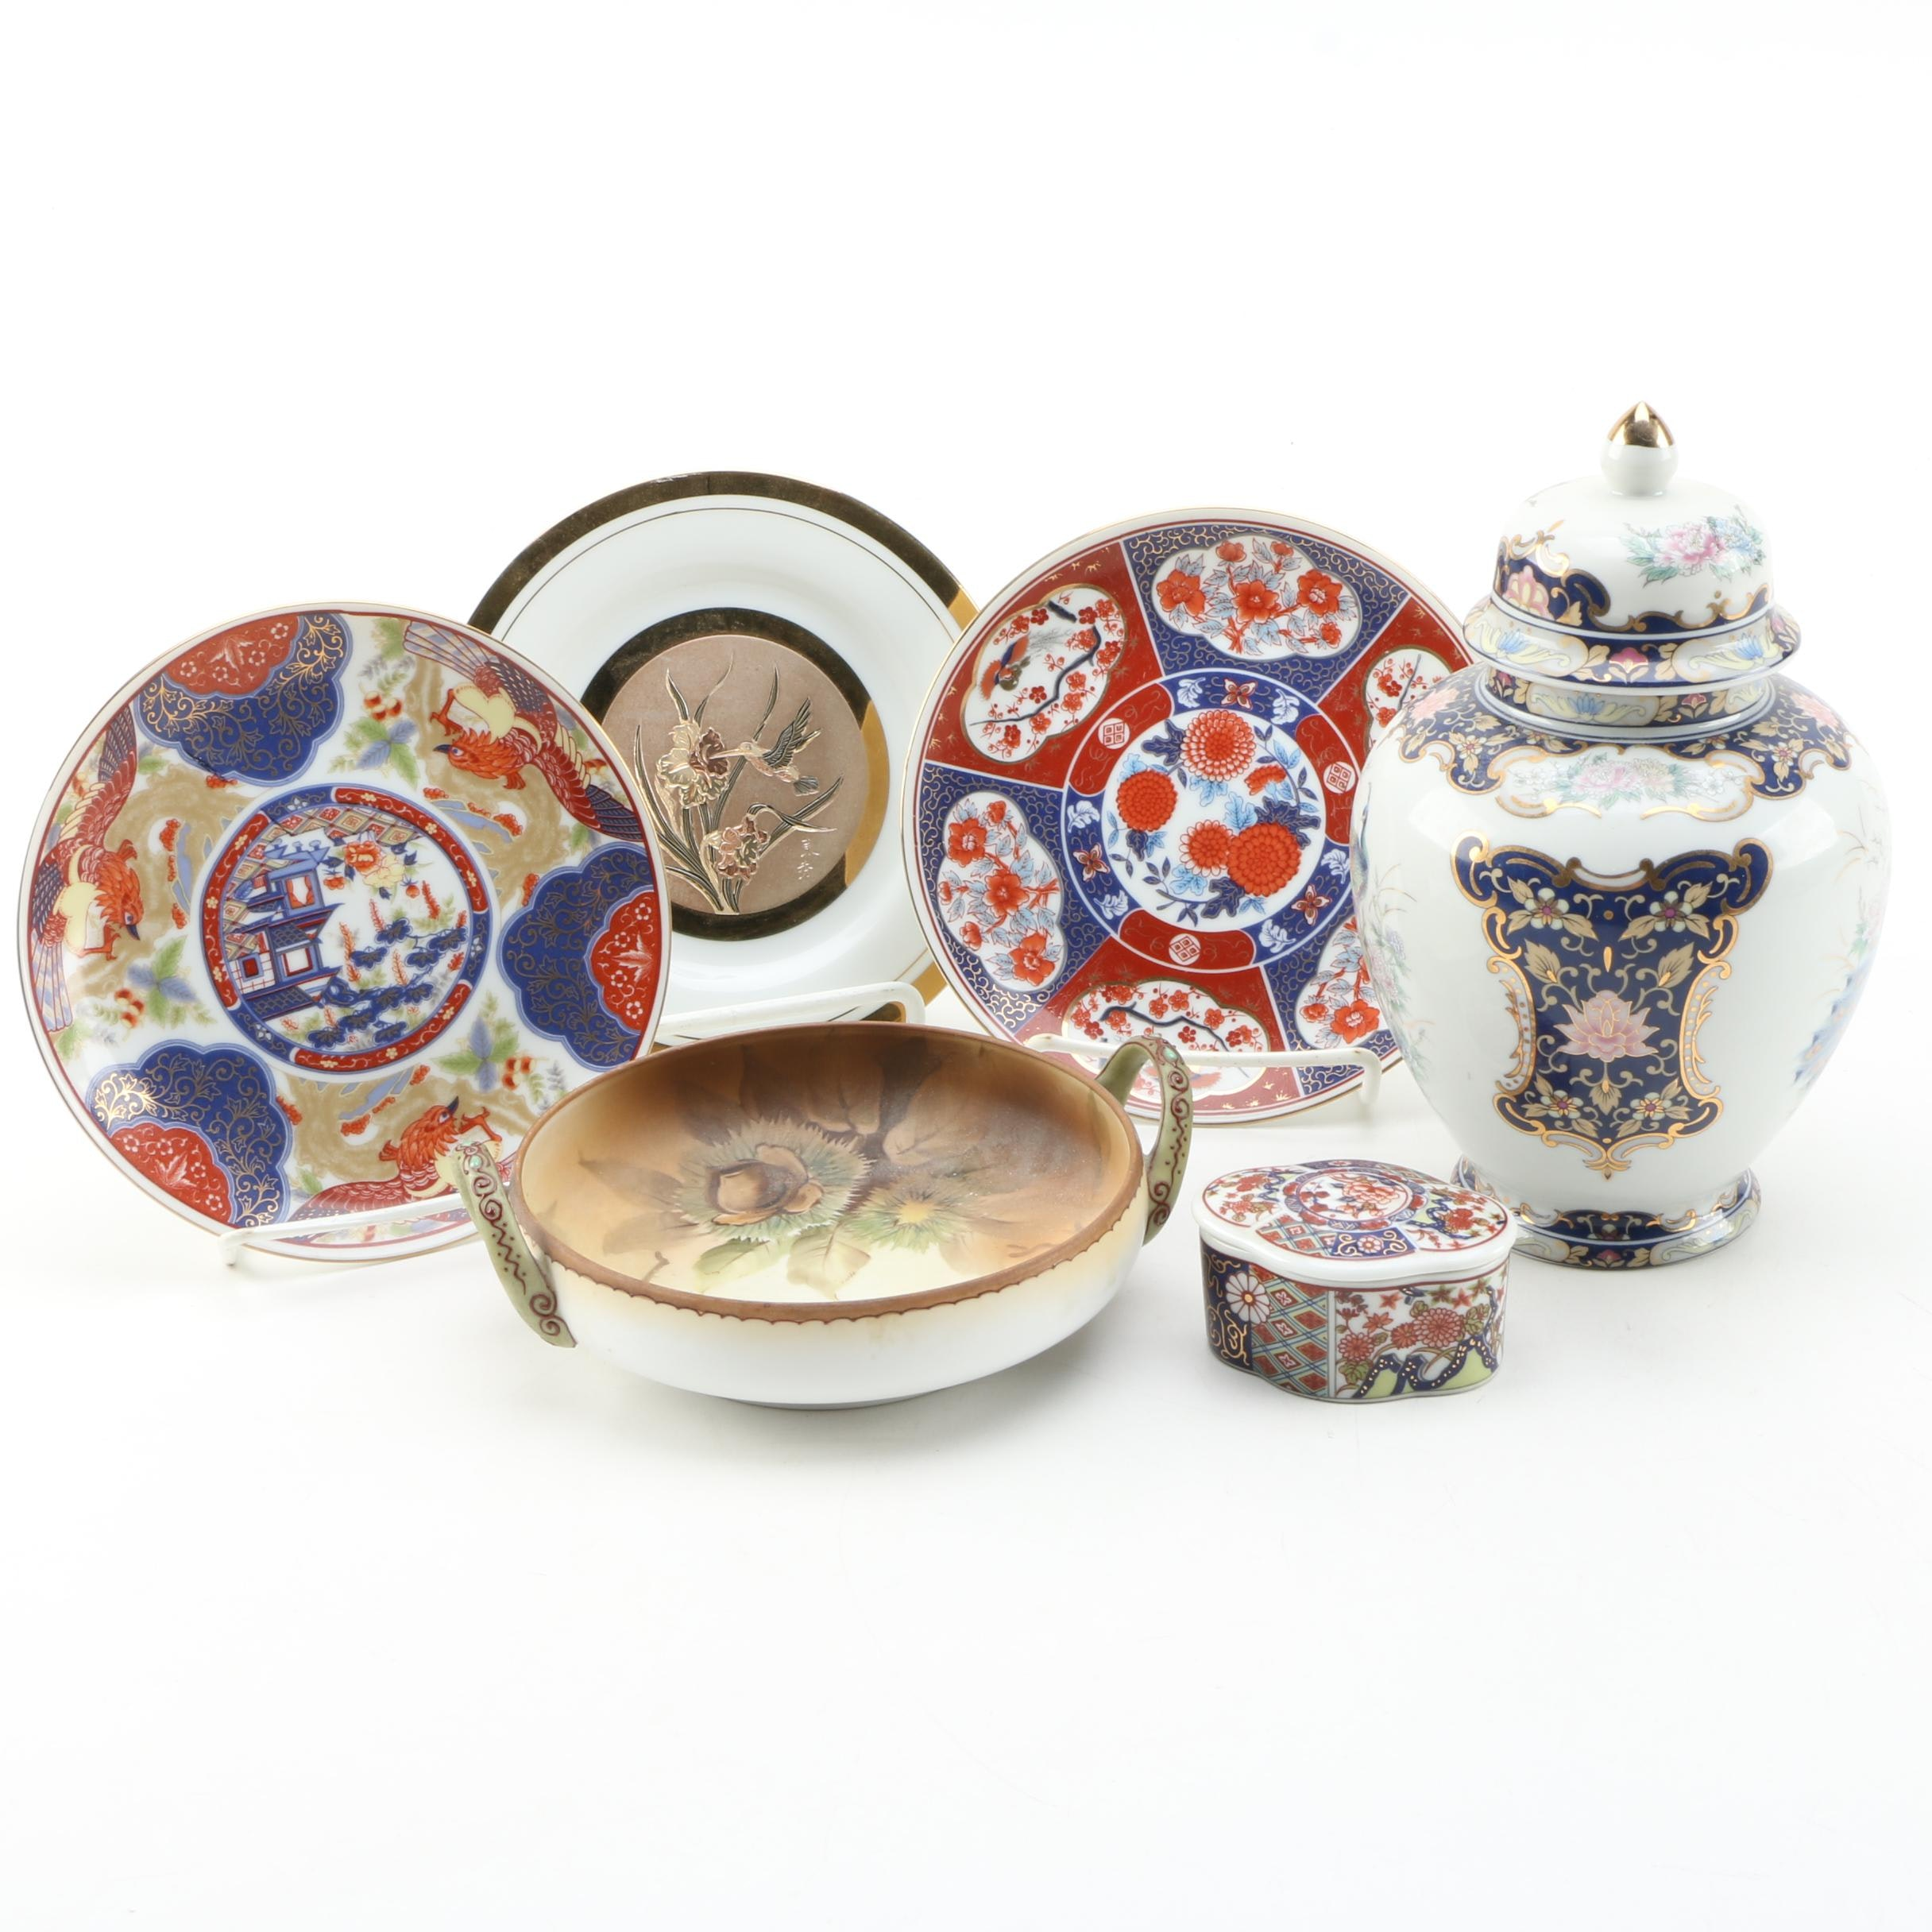 East Asian Tableware including Hand-Painted Noritake